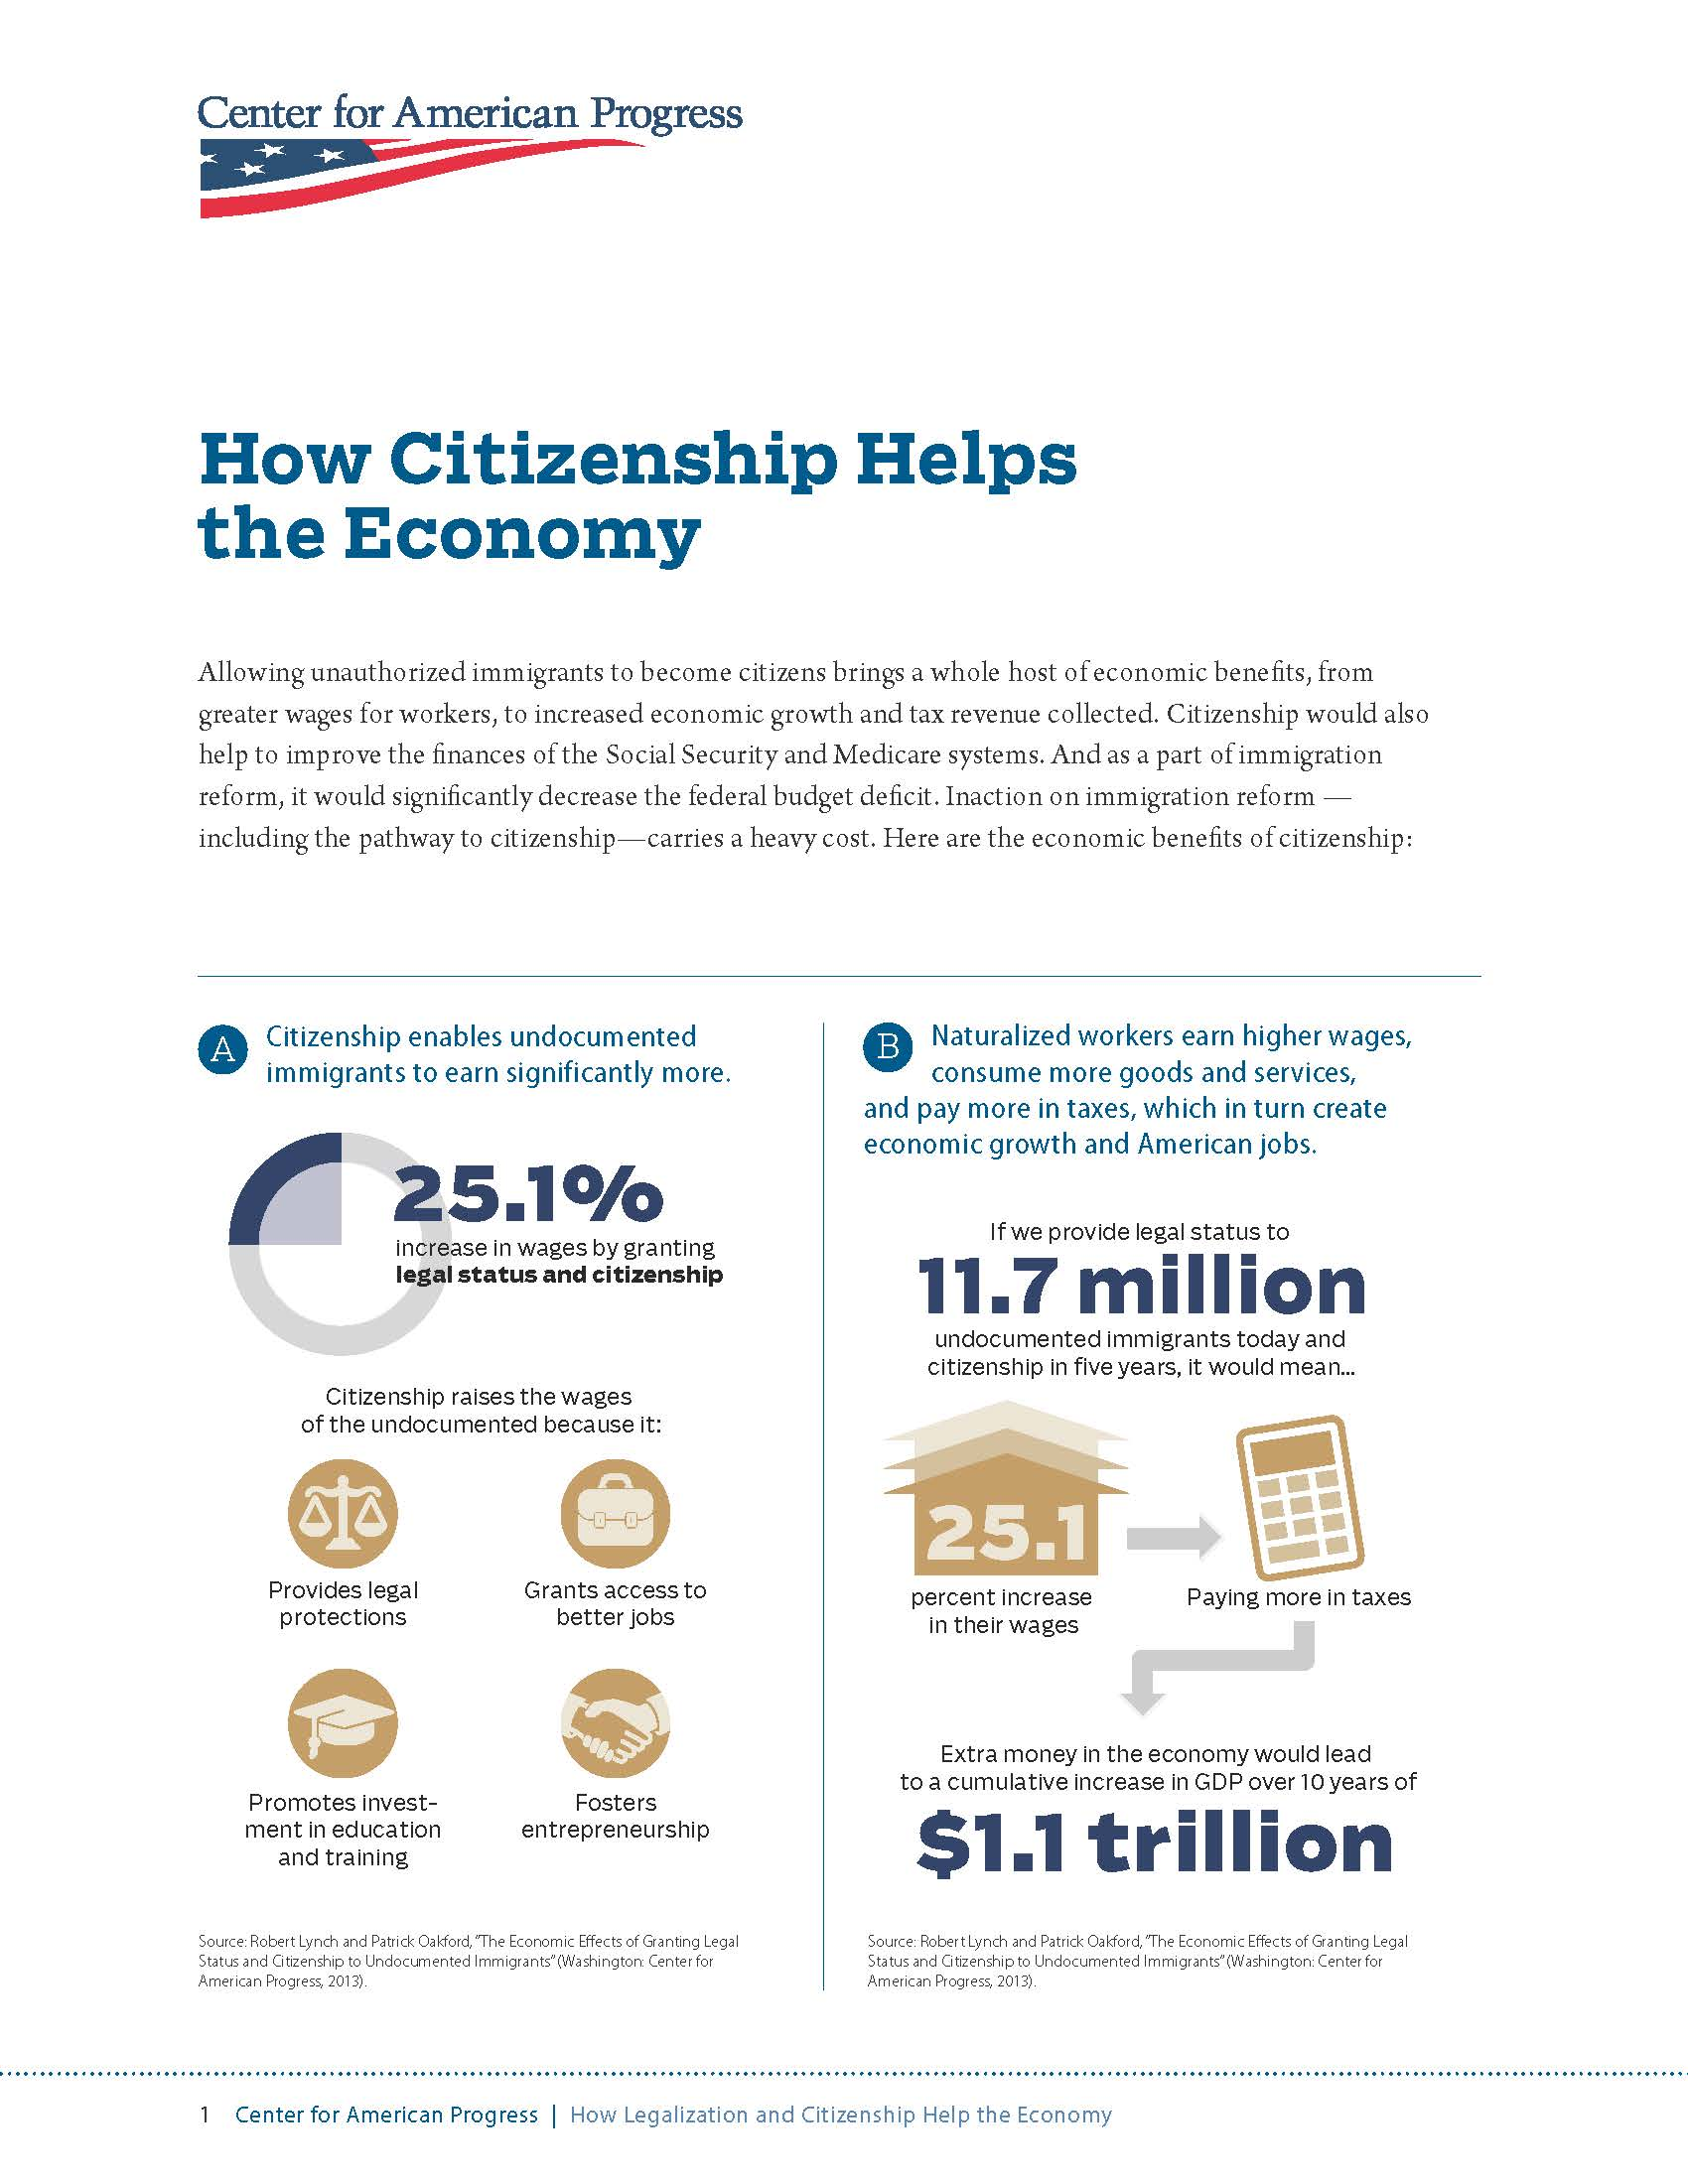 How Citizenship Helps the Economy